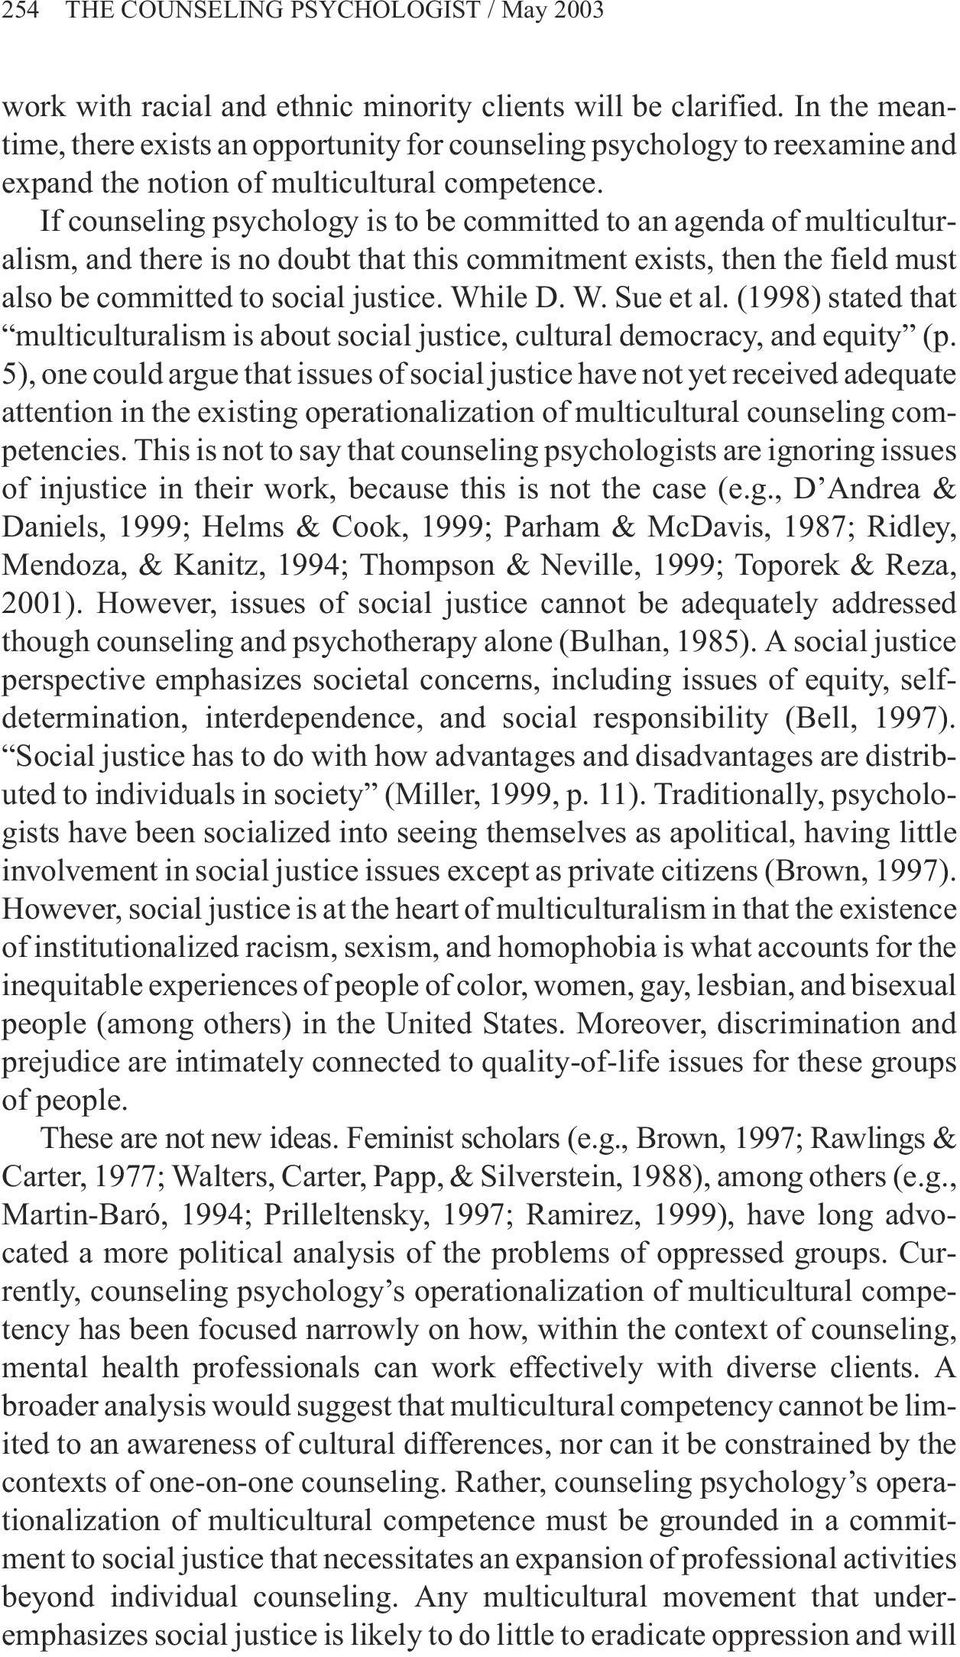 If counseling psychology is to be committed to an agenda of multiculturalism, and there is no doubt that this commitment exists, then the field must also be committed to social justice. While D. W. Sue et al.